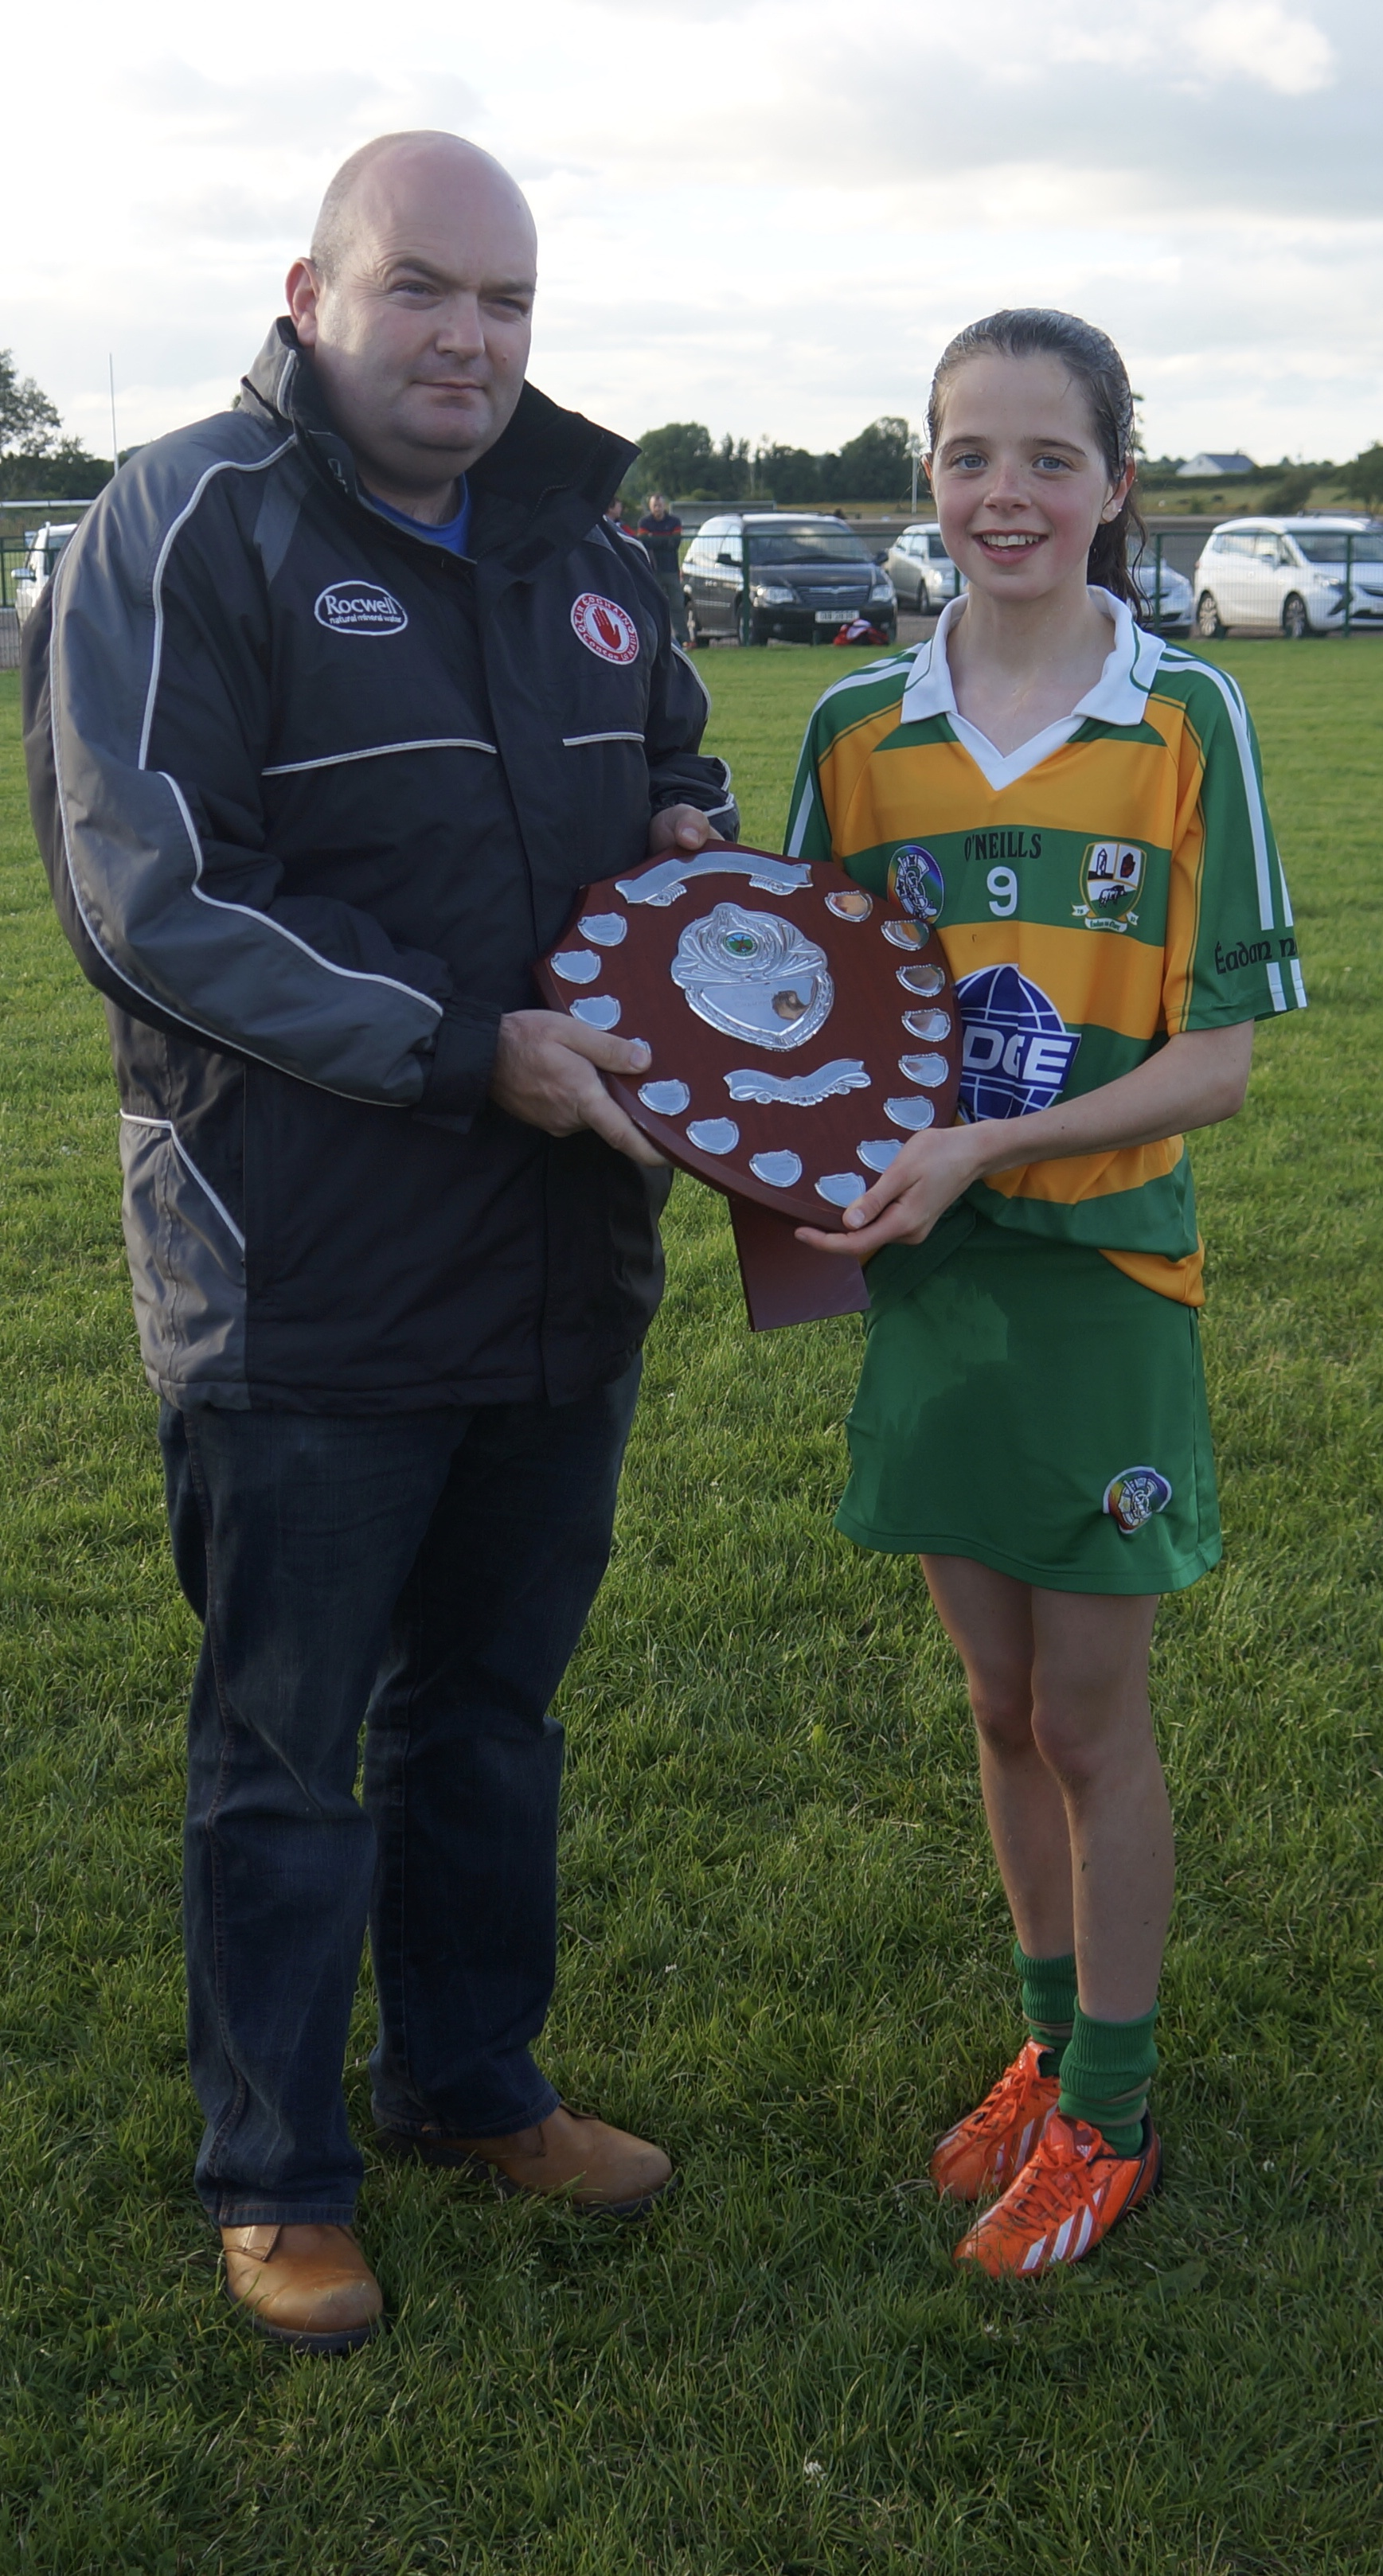 Post Primary Championship Camogie final